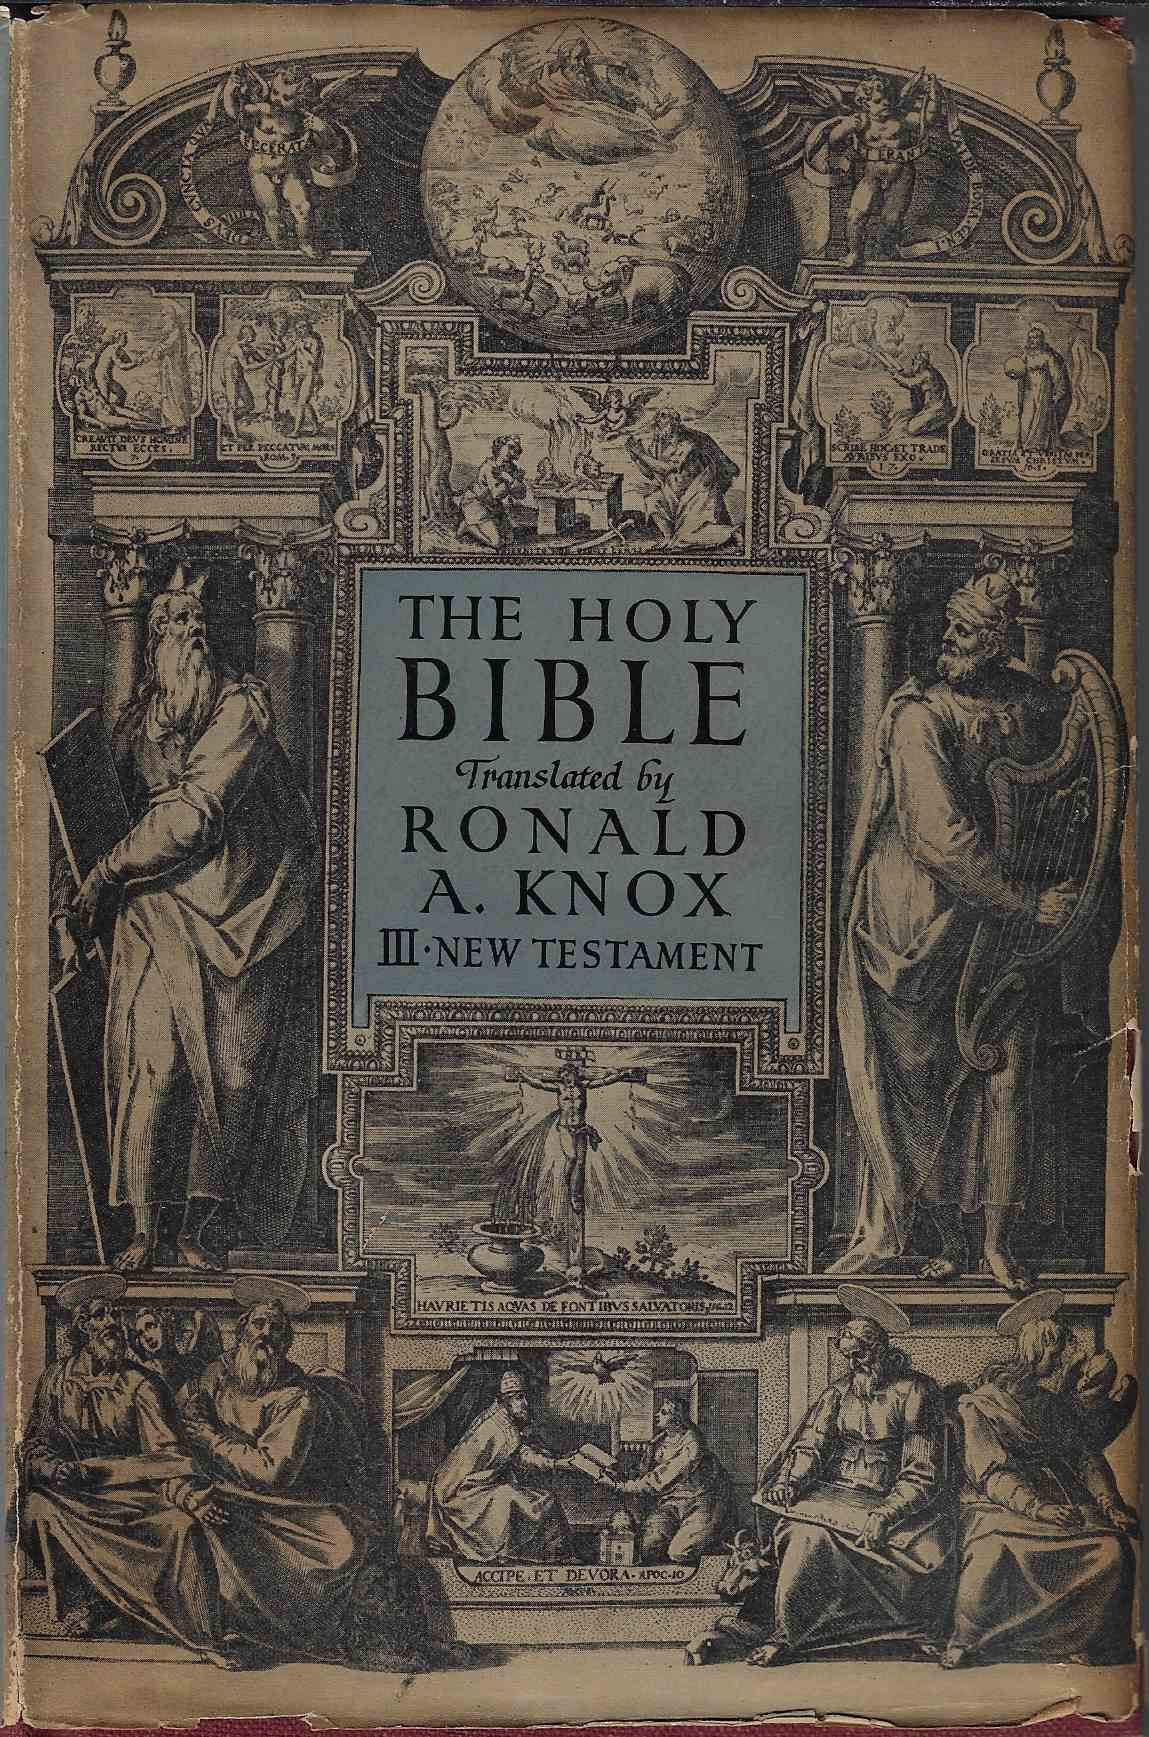 Image for The Holy Bible Translated by Ronald A. Knox The New Testament